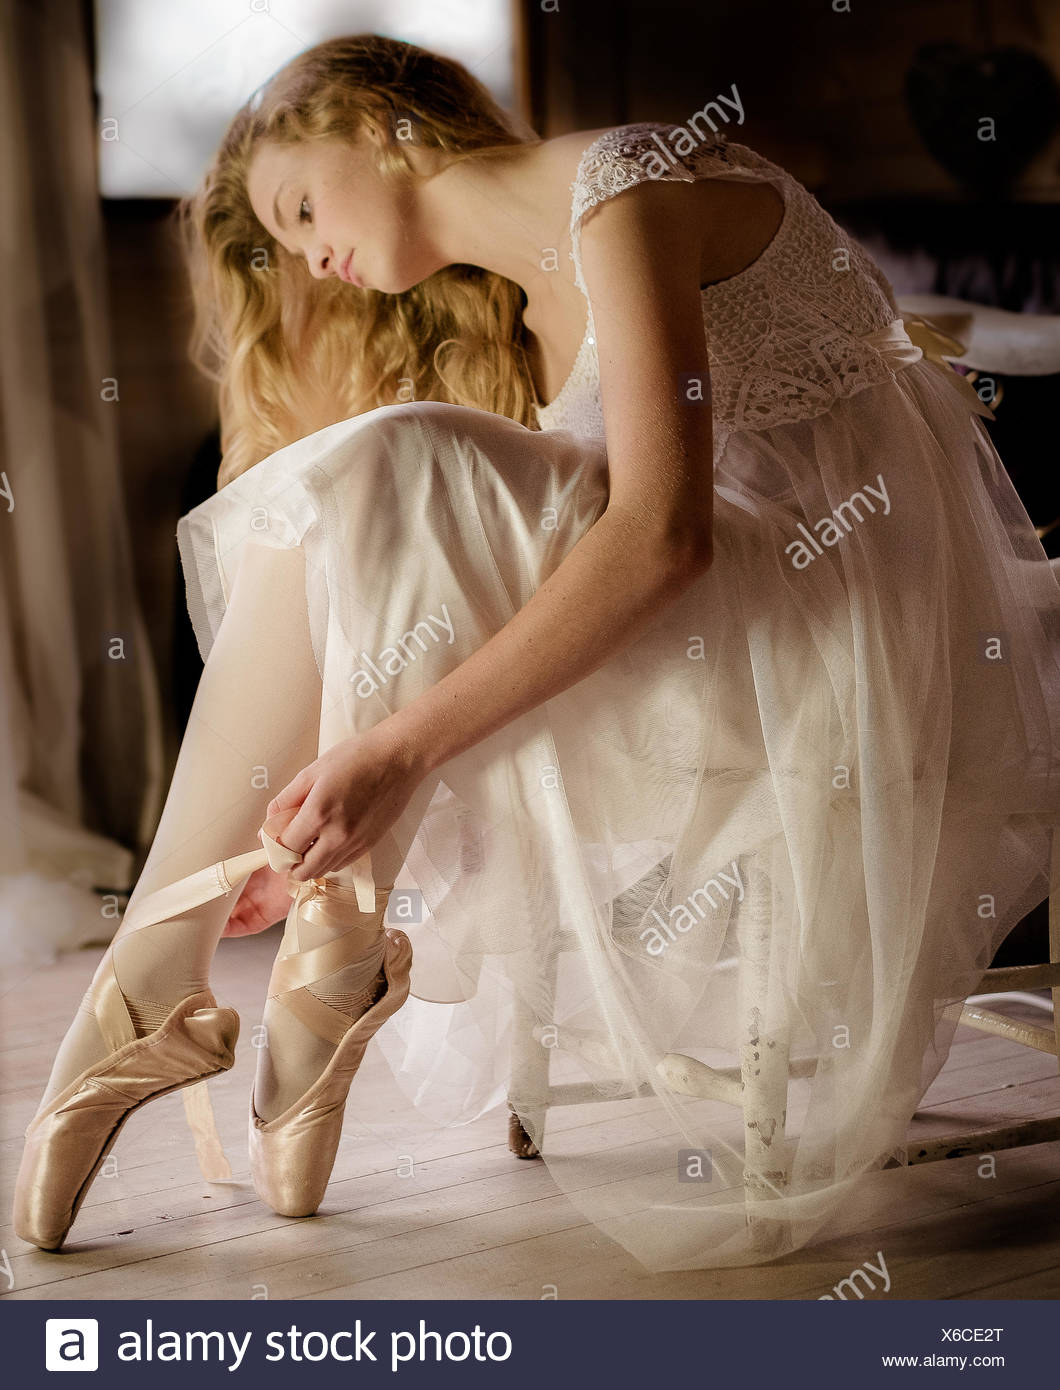 Young ballet dancer in white dress preparing ribbons on ballet shoes - Stock Image